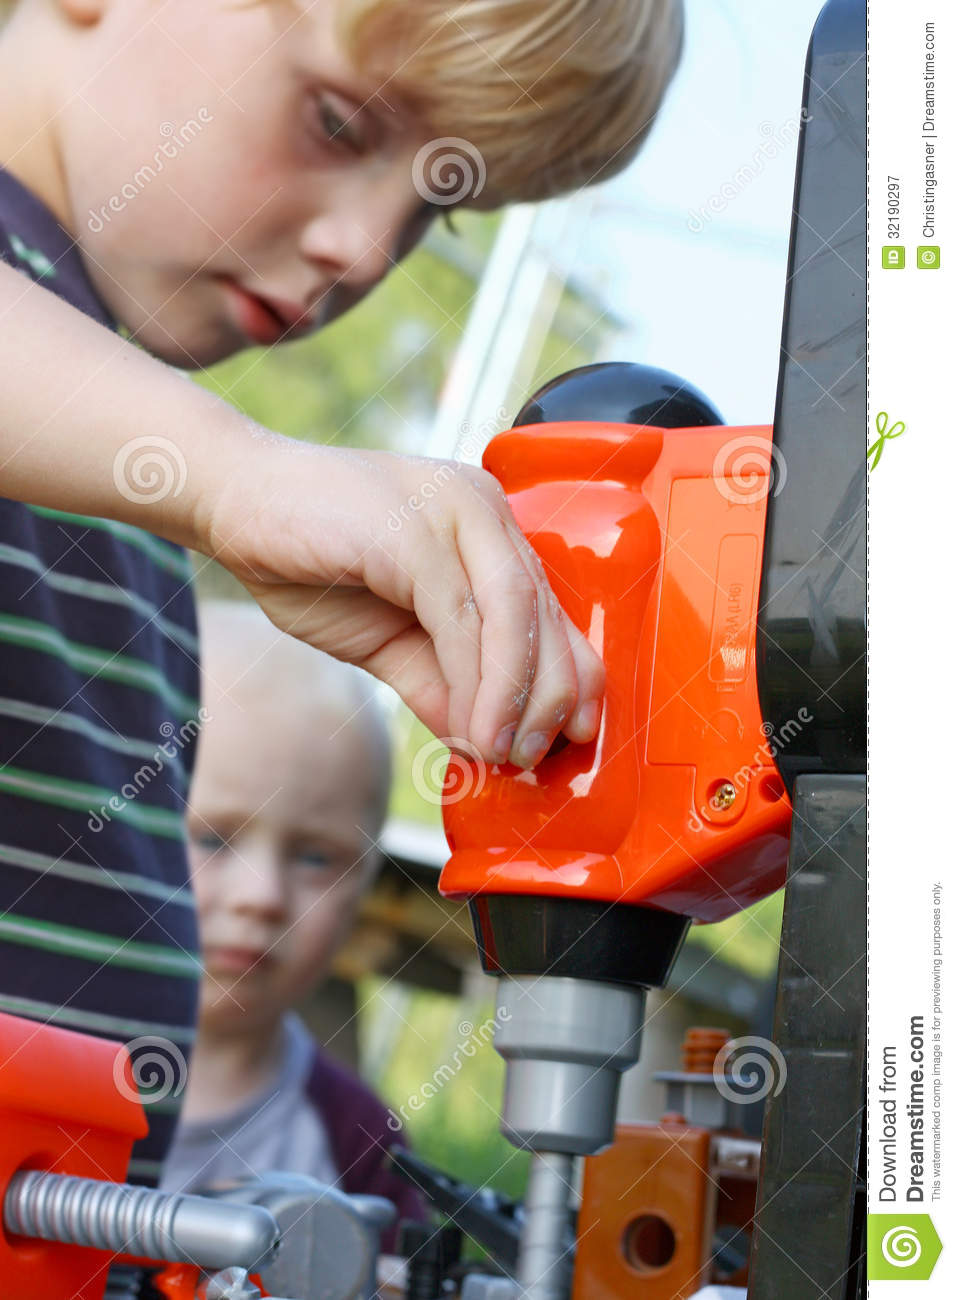 Child Playing With Toy Tools Royalty Free Stock